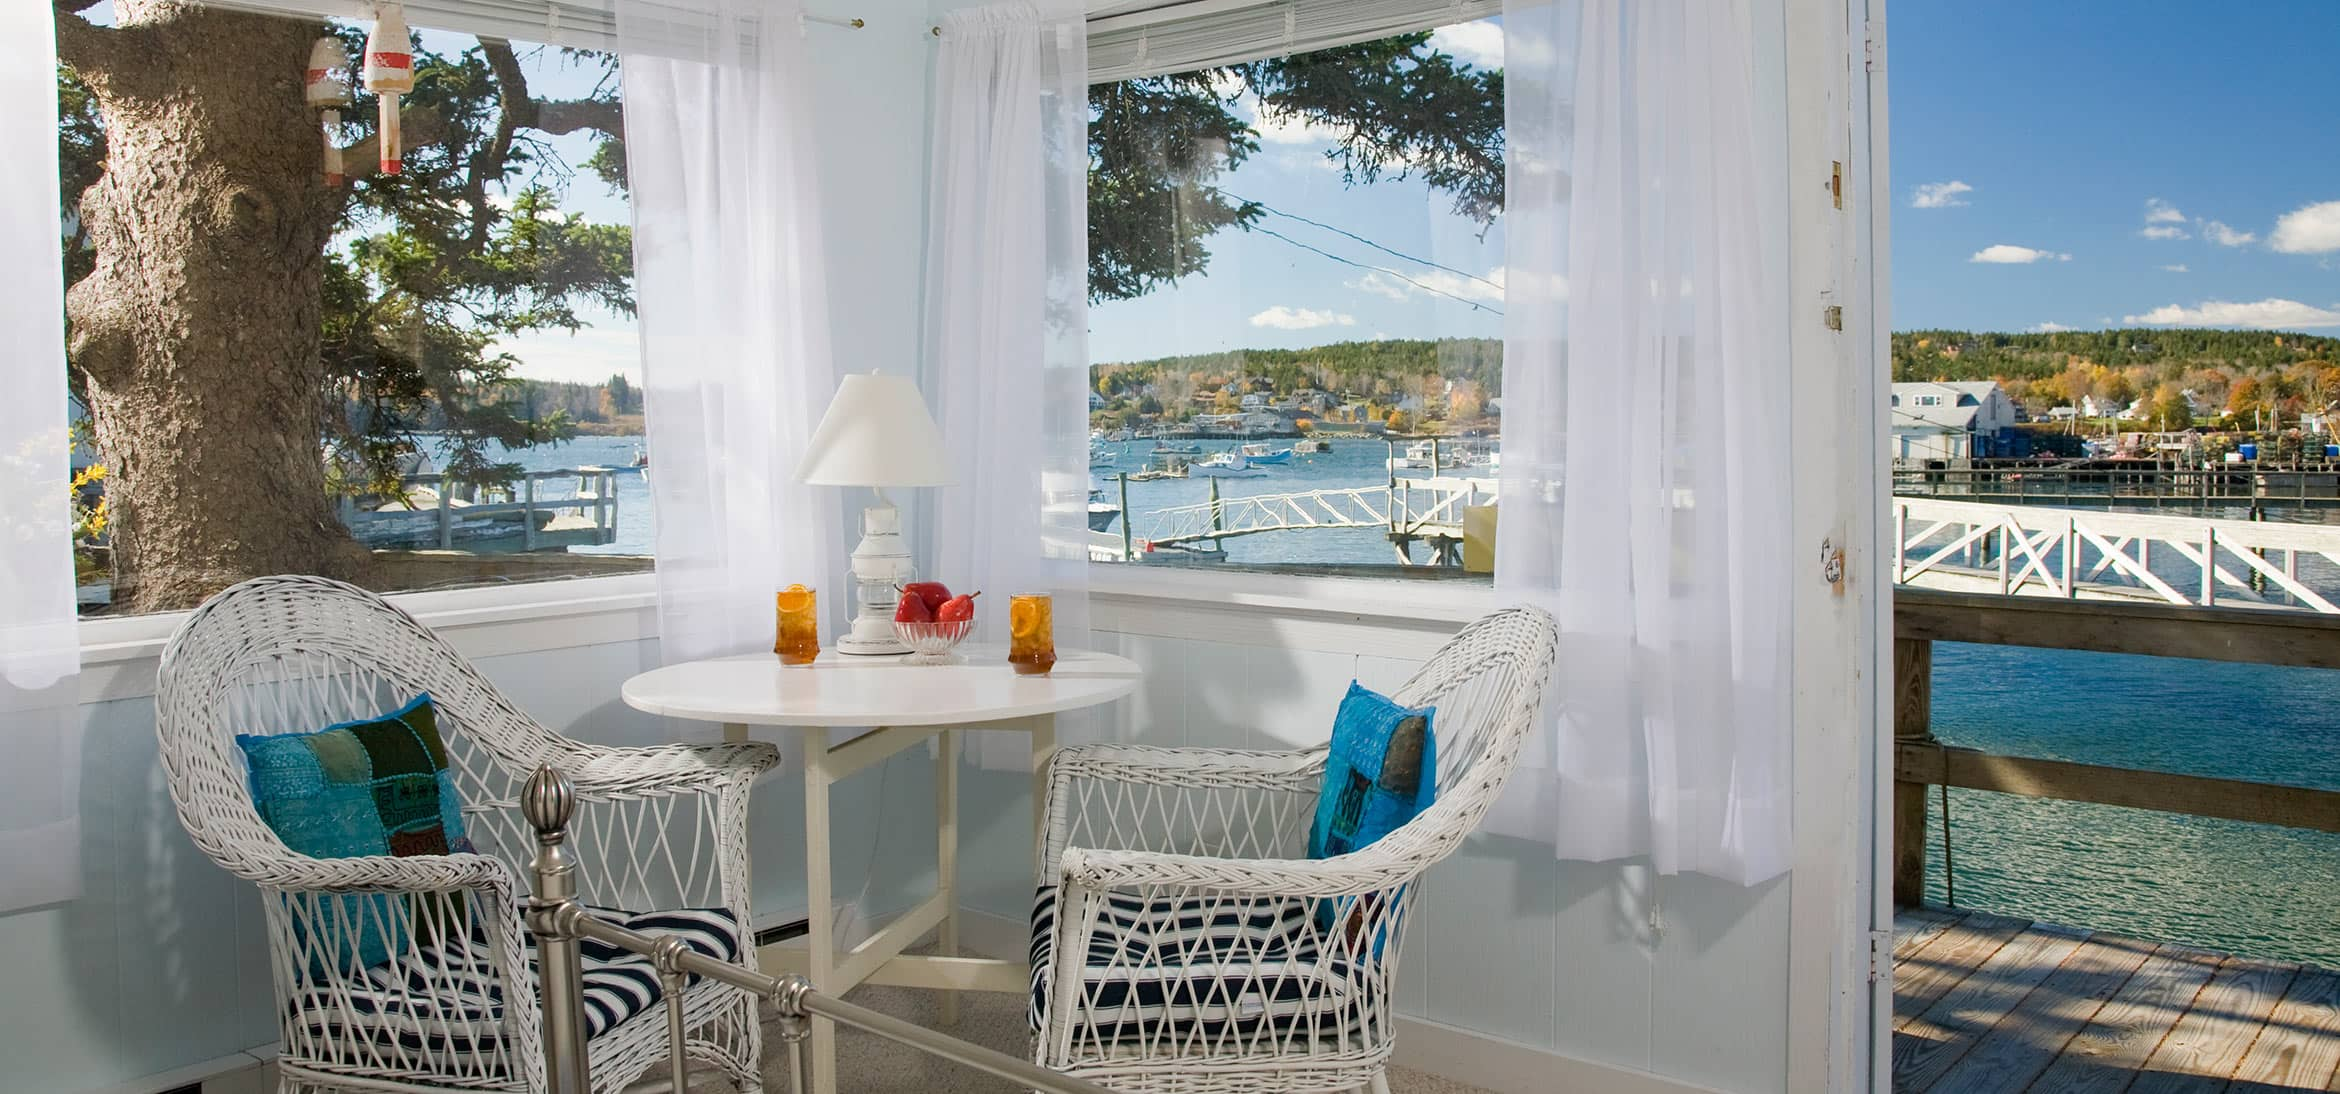 Table with wicker chairs and stunning view in Deck House